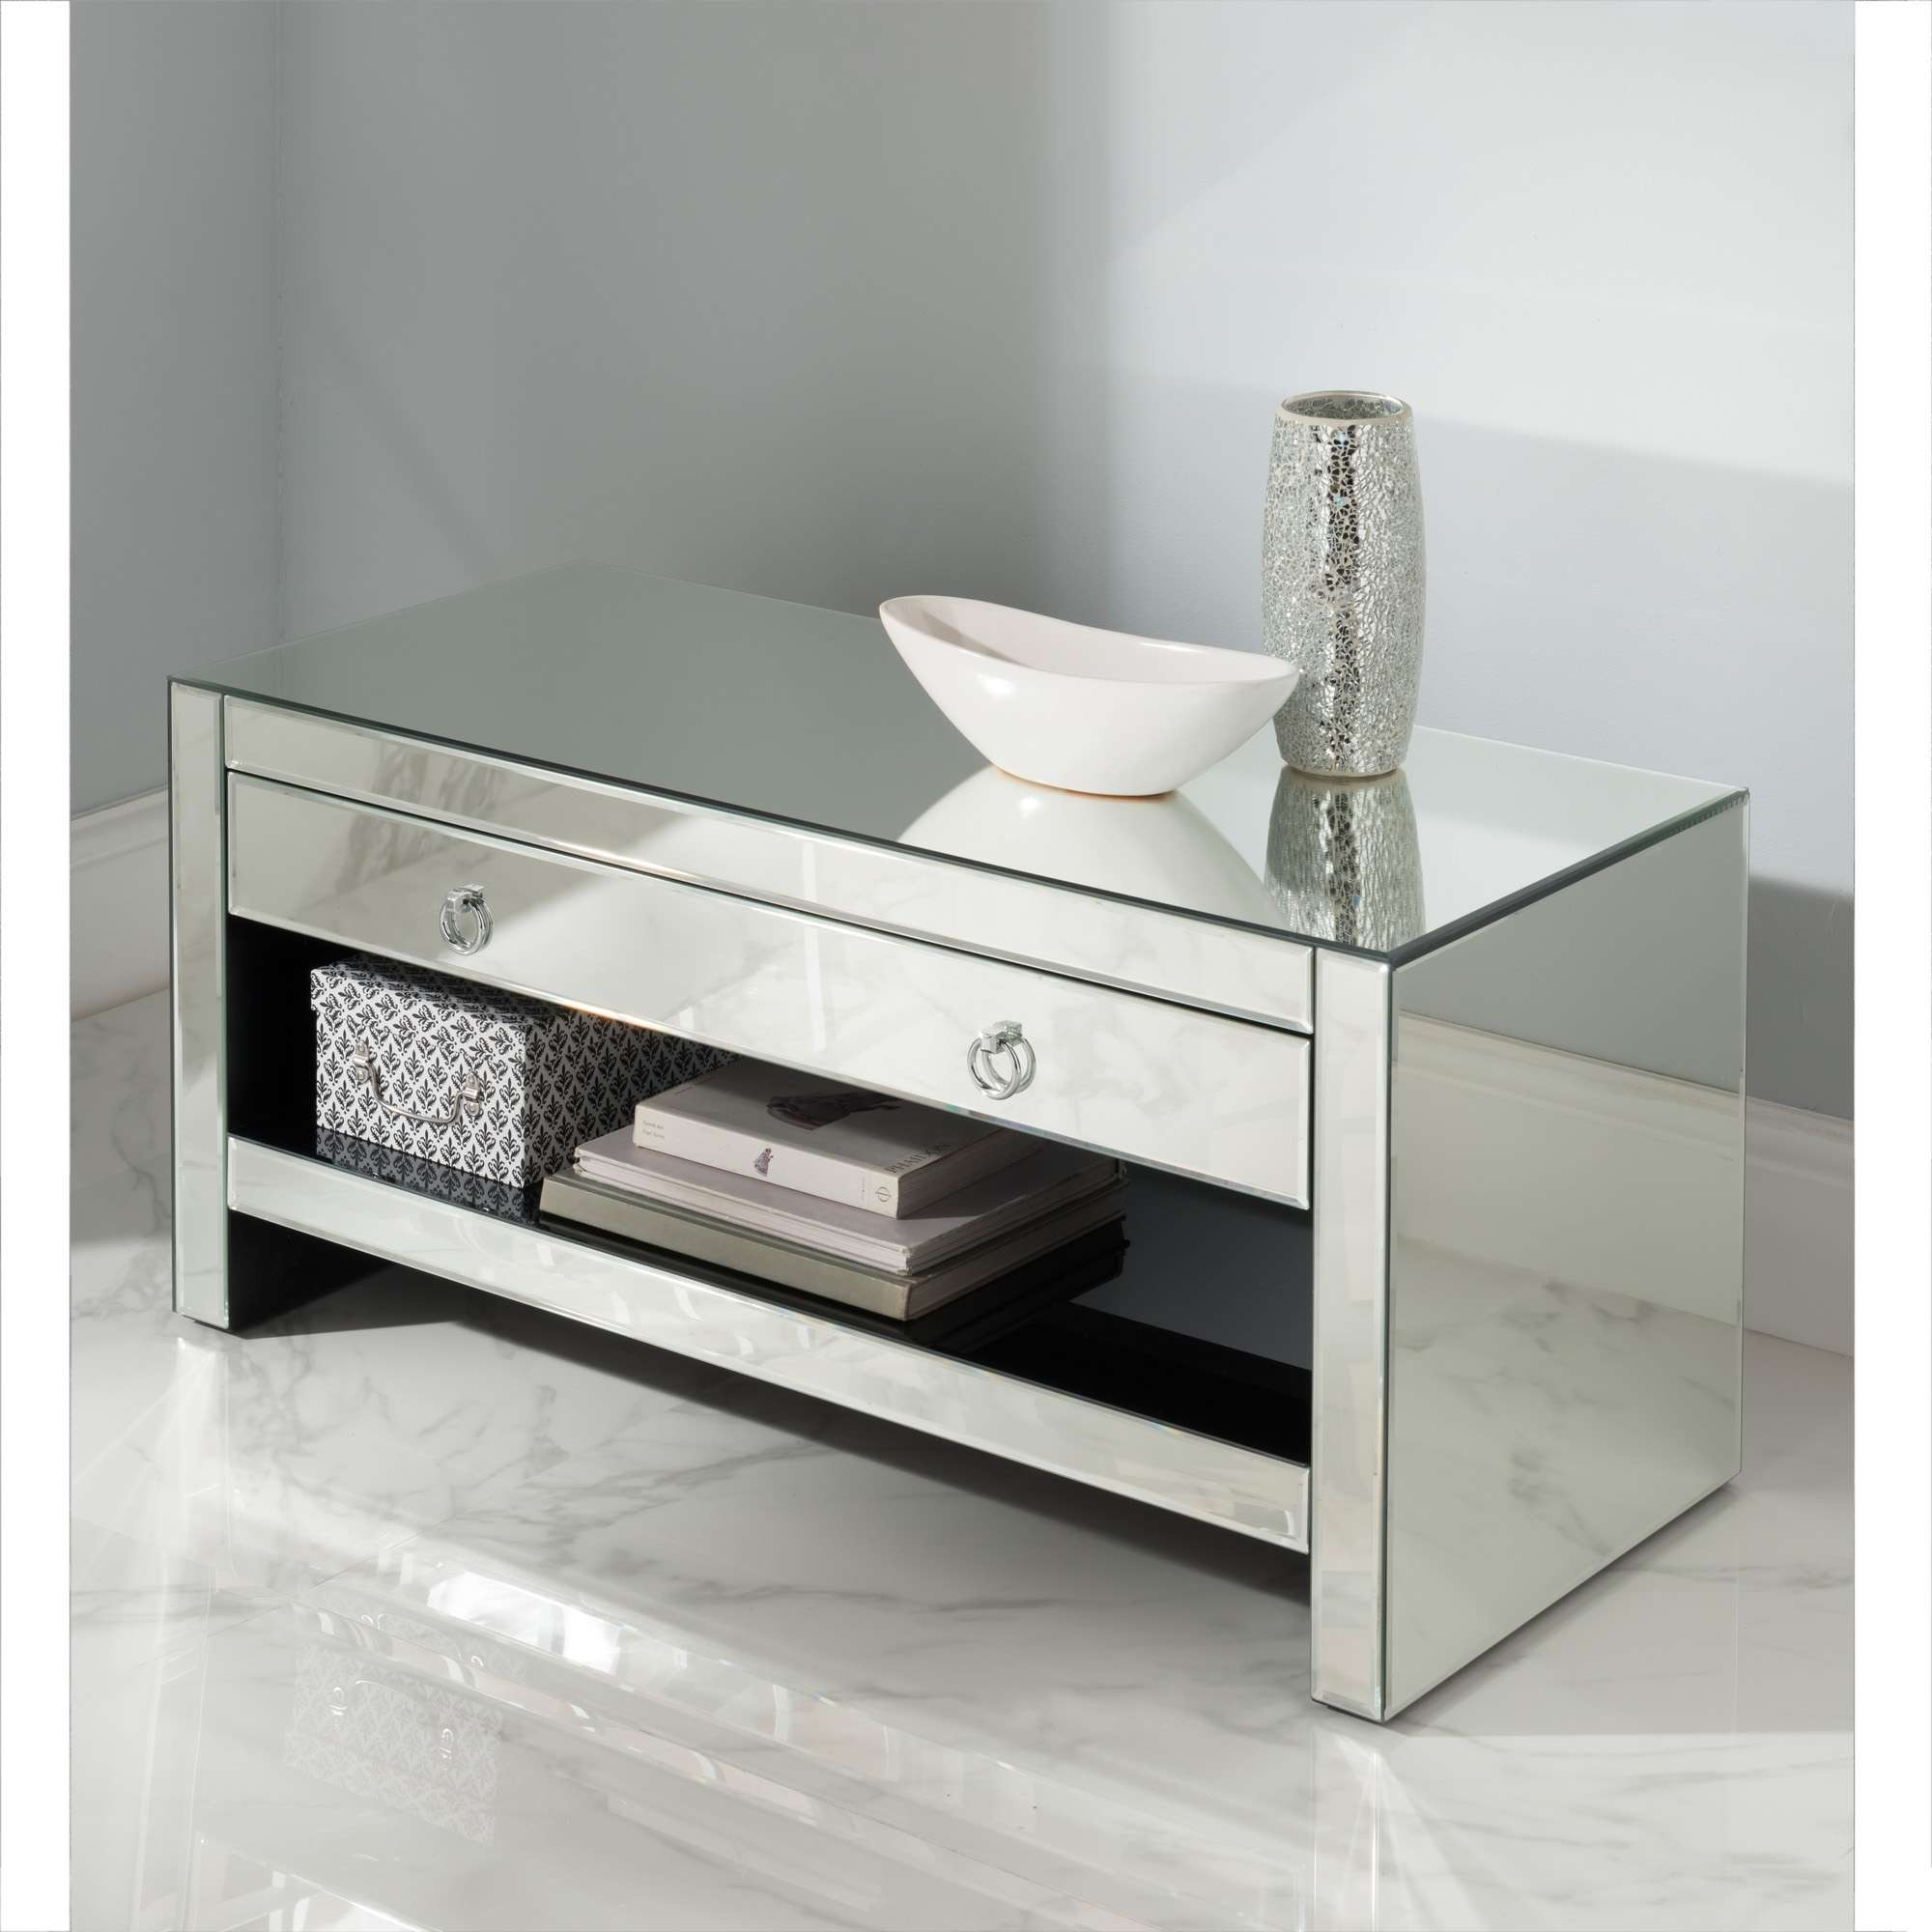 Mirrored Tv Cabinet | Glass Venetian Furniture | Homesdirect365 Inside Mirror Tv Cabinets (View 2 of 20)